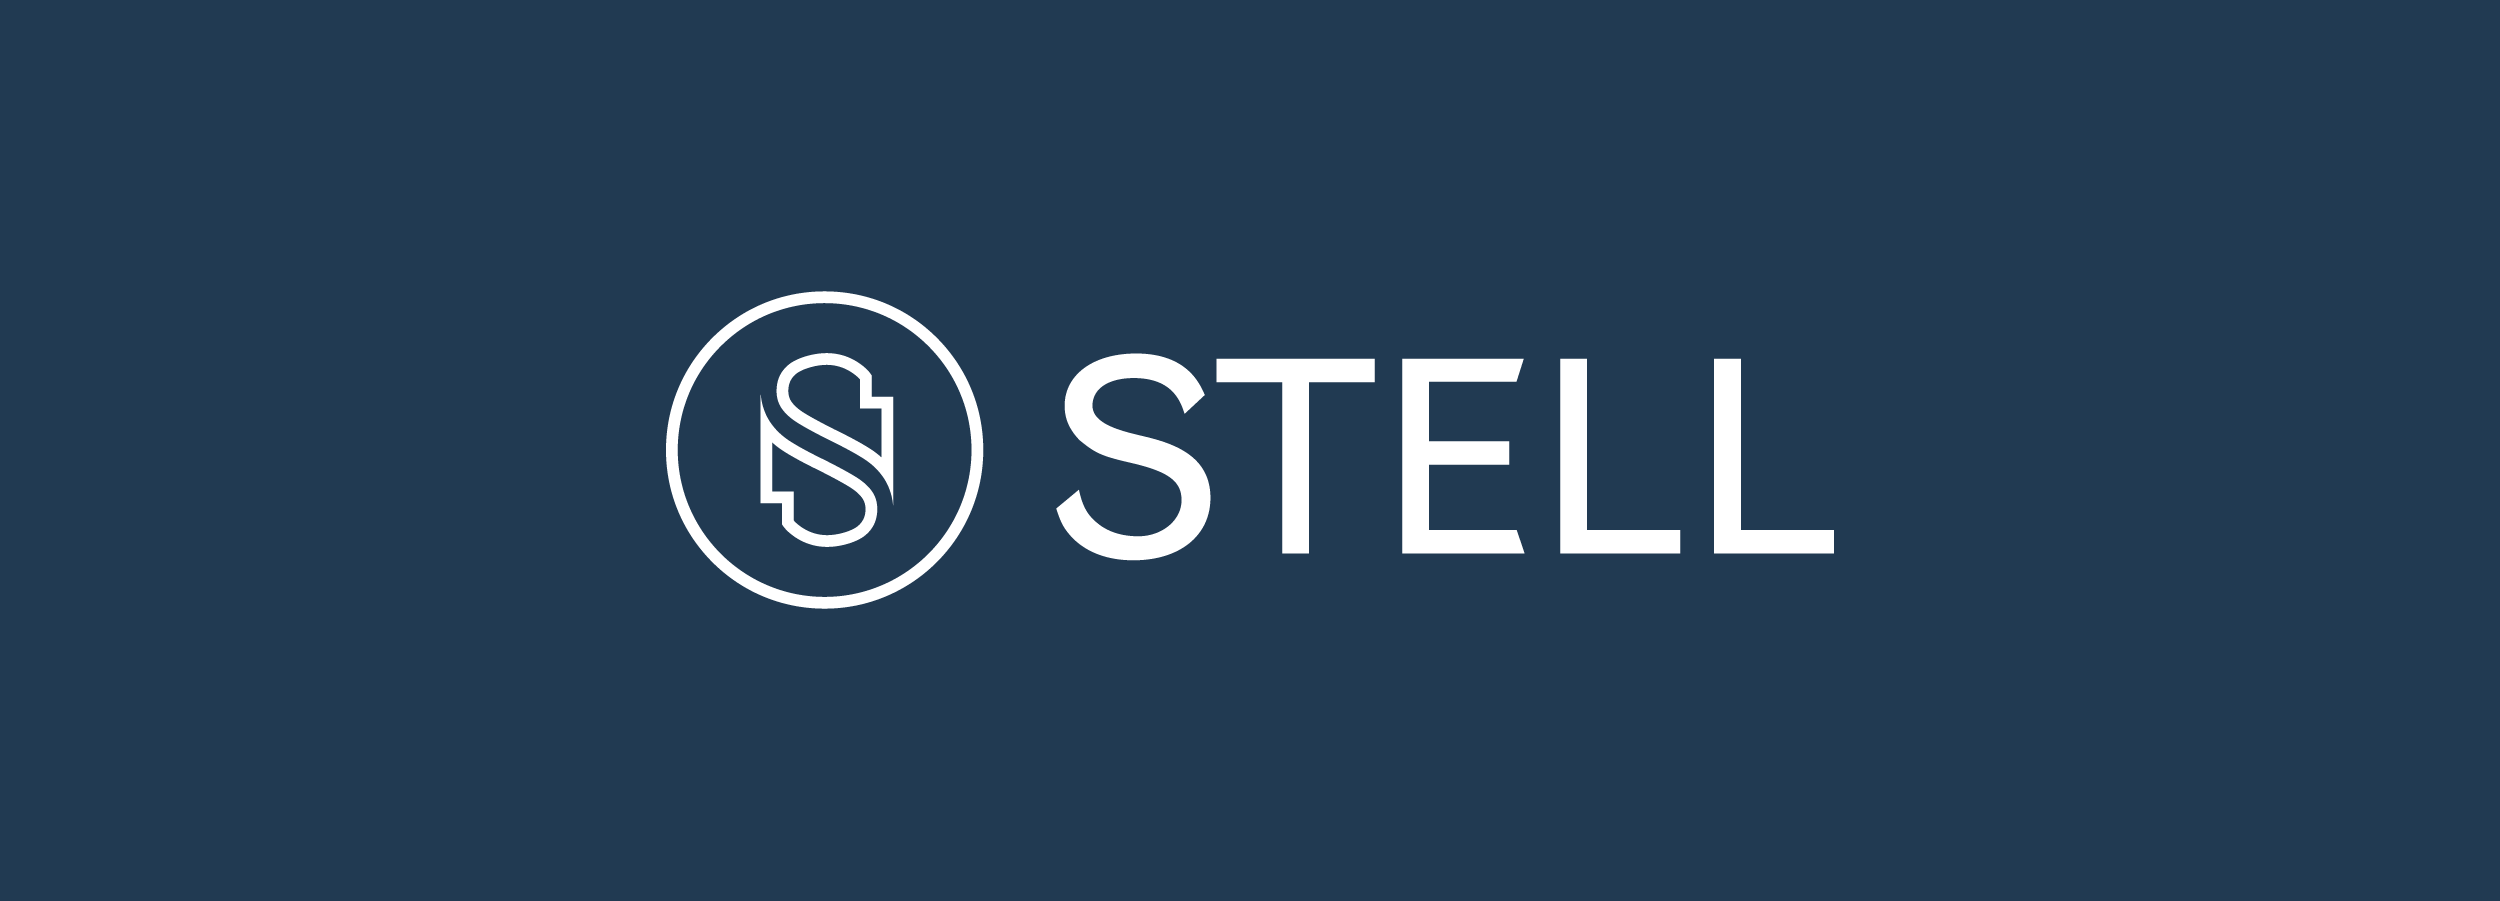 stell-01.png